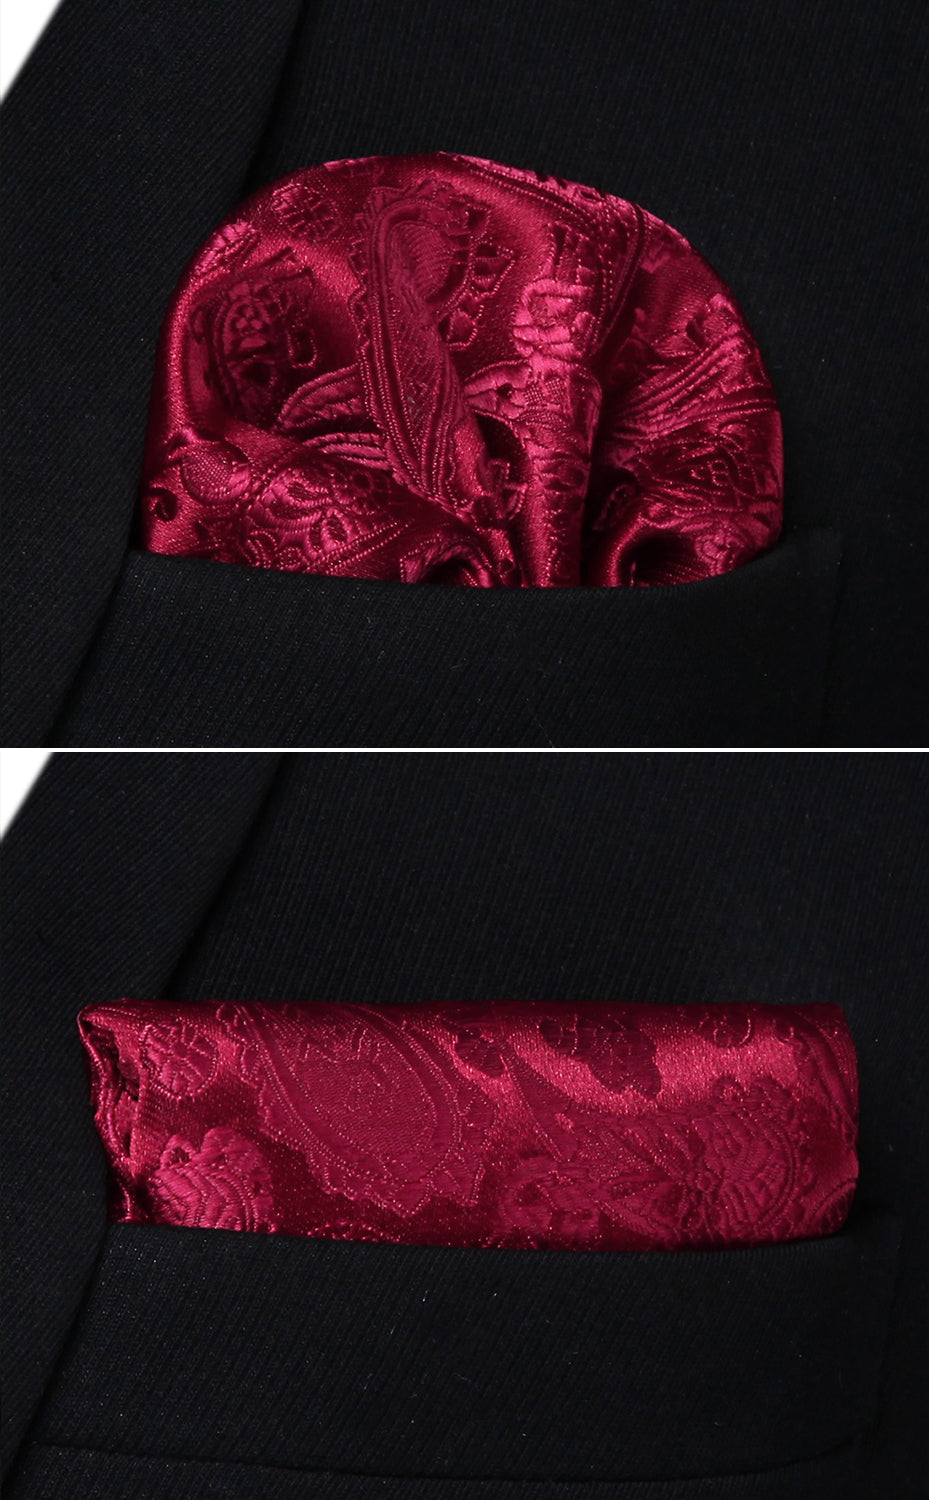 484349f436b6 Burgundy Silk Tie and Pocket Square | Beautiful ties at unbelievable ...